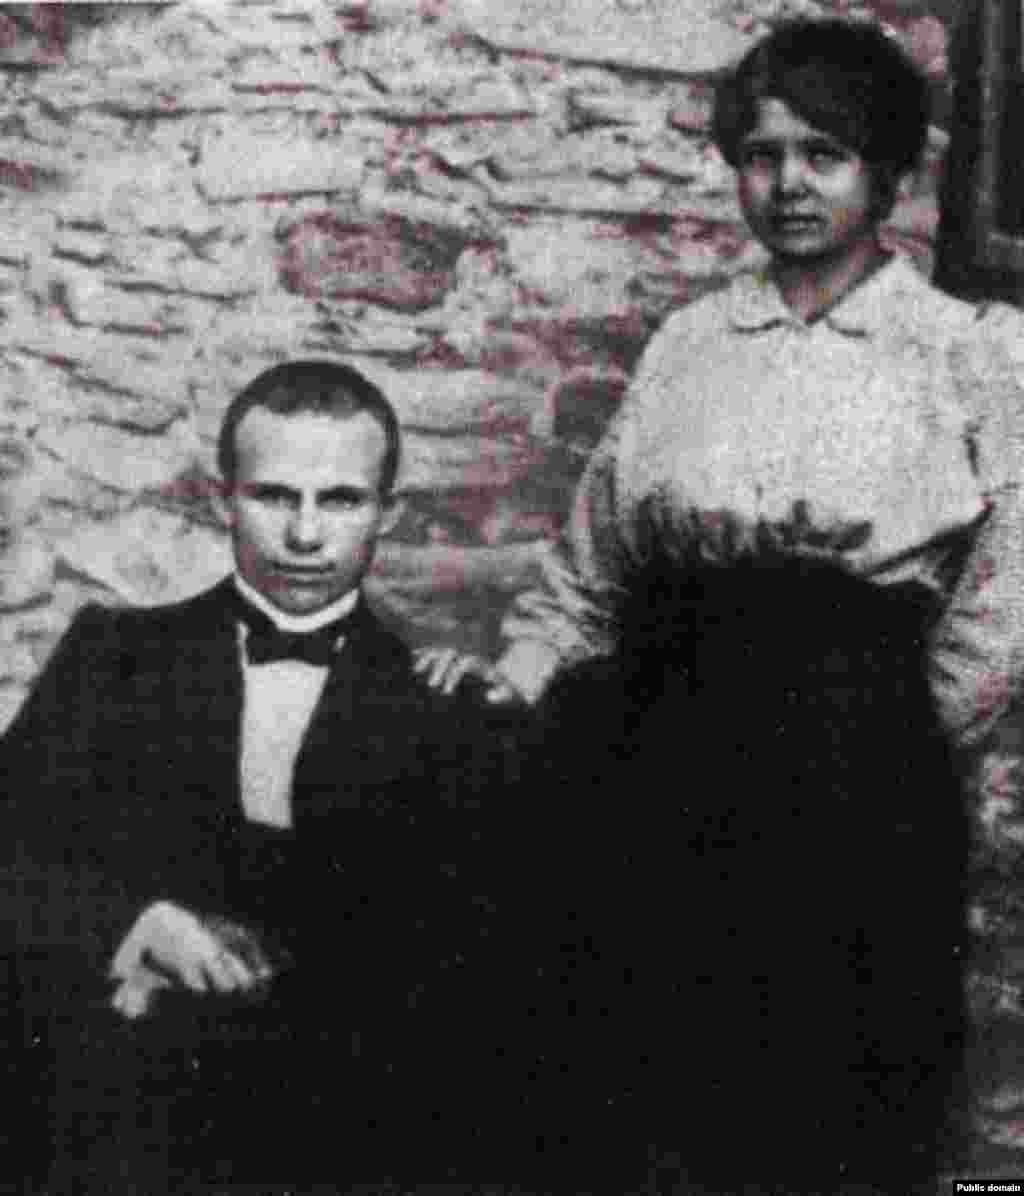 Nikita Khrushchev and his first wife, Euphrasinia, dressed in their Sunday best in 1916. Euphrasinia would die of typhus a few years later as Nikita was rising through Communist Party ranks toward eventually heading the Soviet Union.